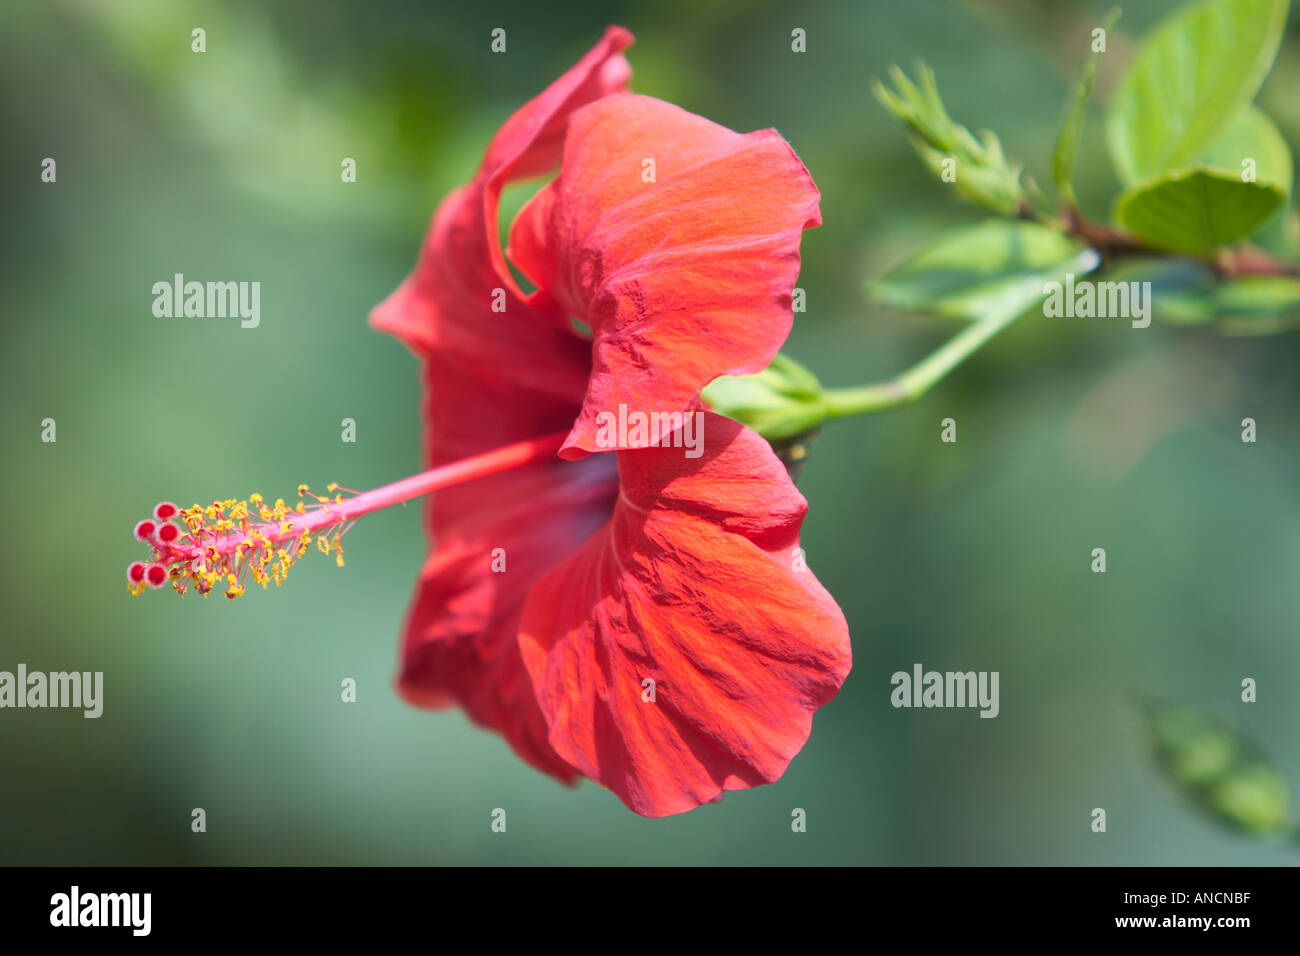 Red hibiscus flower scientific name hibiscus rosa sinensis corfu red hibiscus flower scientific name hibiscus rosa sinensis corfu island greece izmirmasajfo